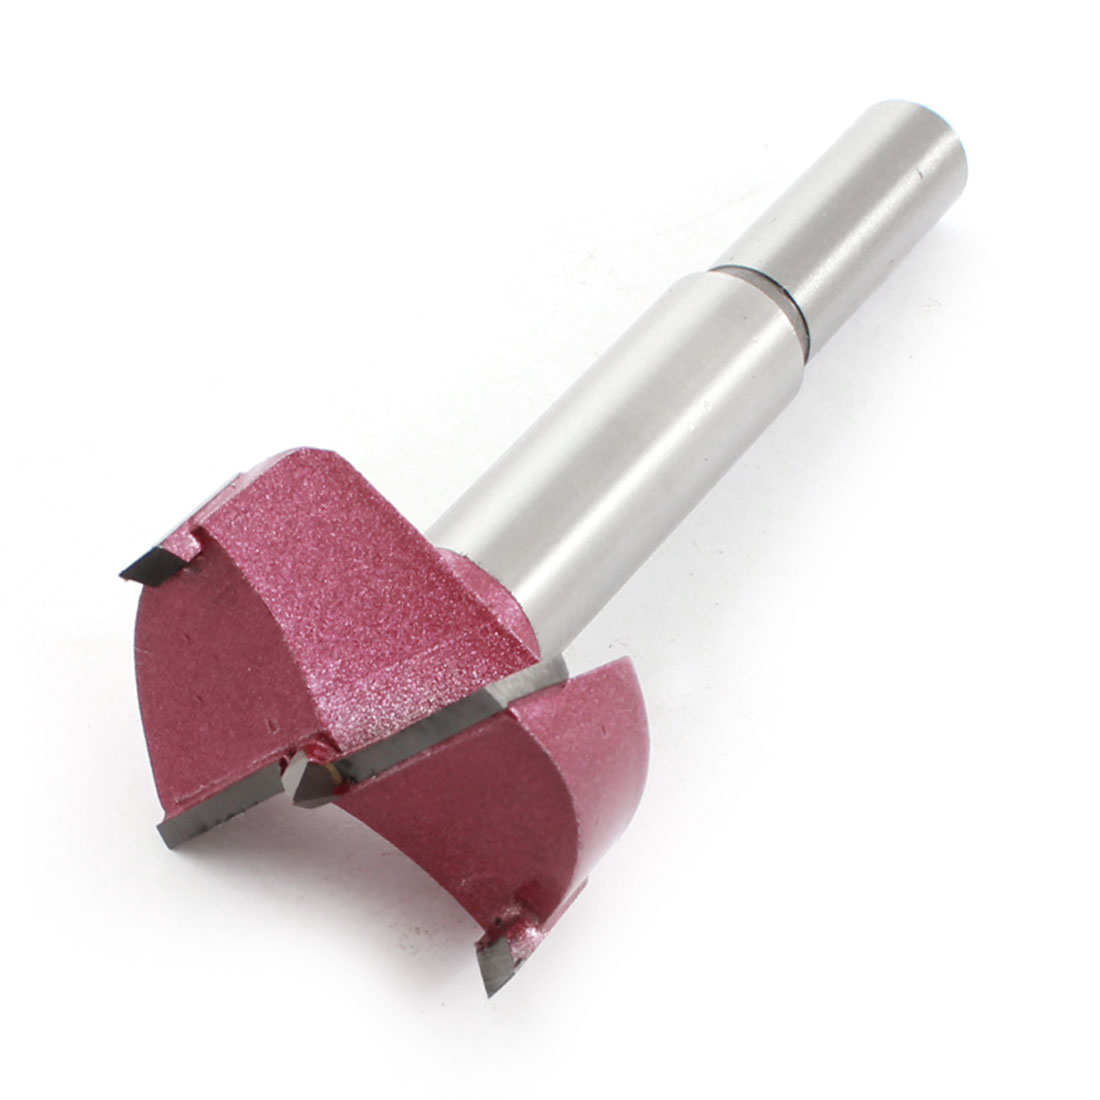 Burgundy Silver Tone 35mm Dia Carbide Tipped Alloy Hinge Boring Bit